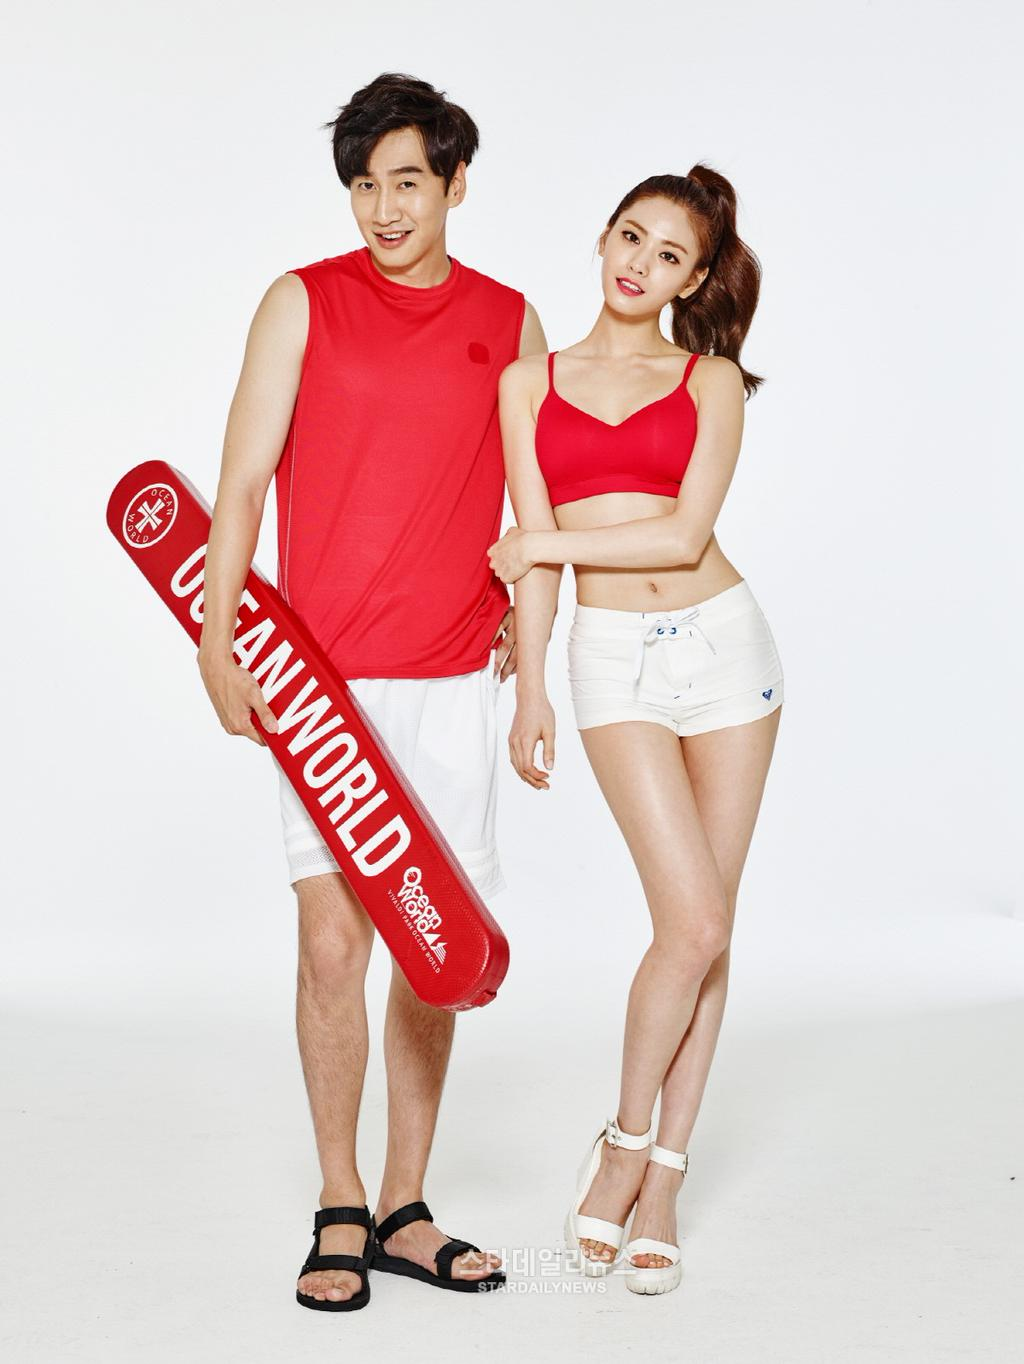 uee and kwang soo dating after divorce